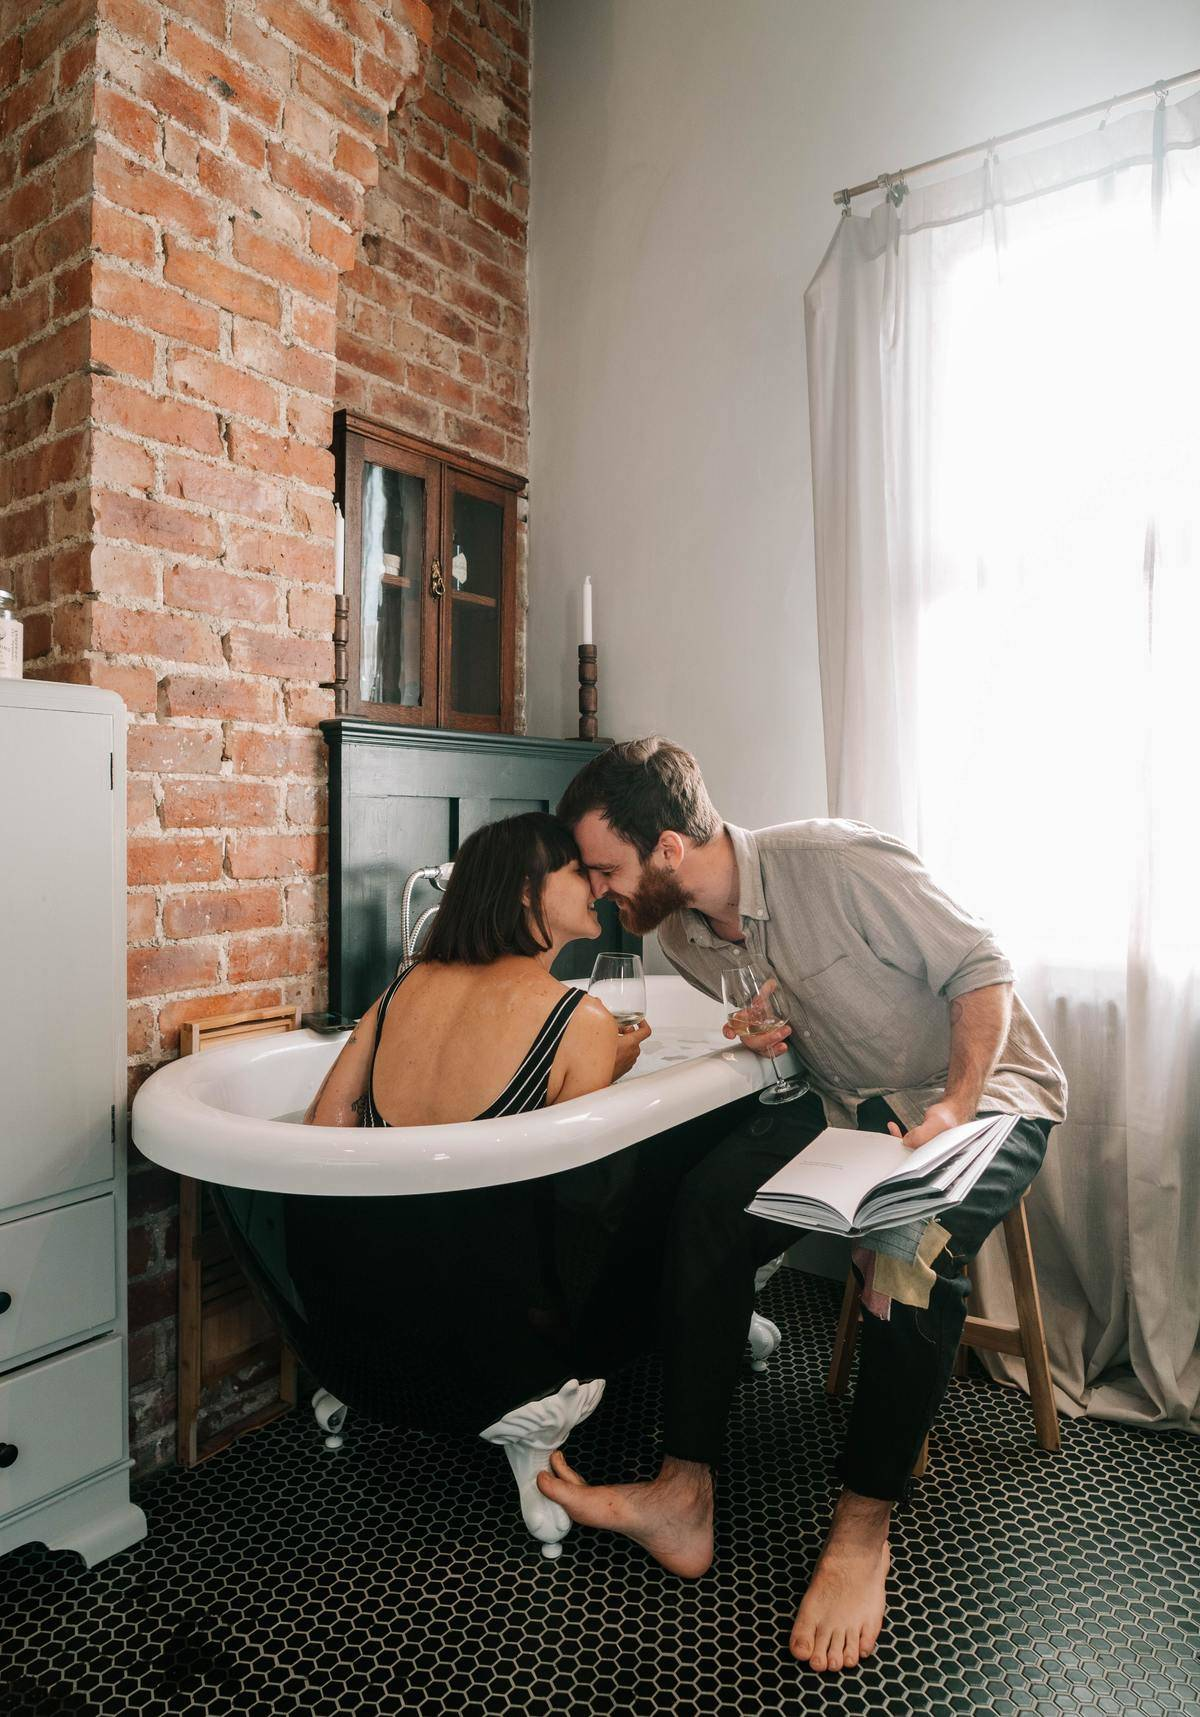 guy reading to girlfriend who is in the tub